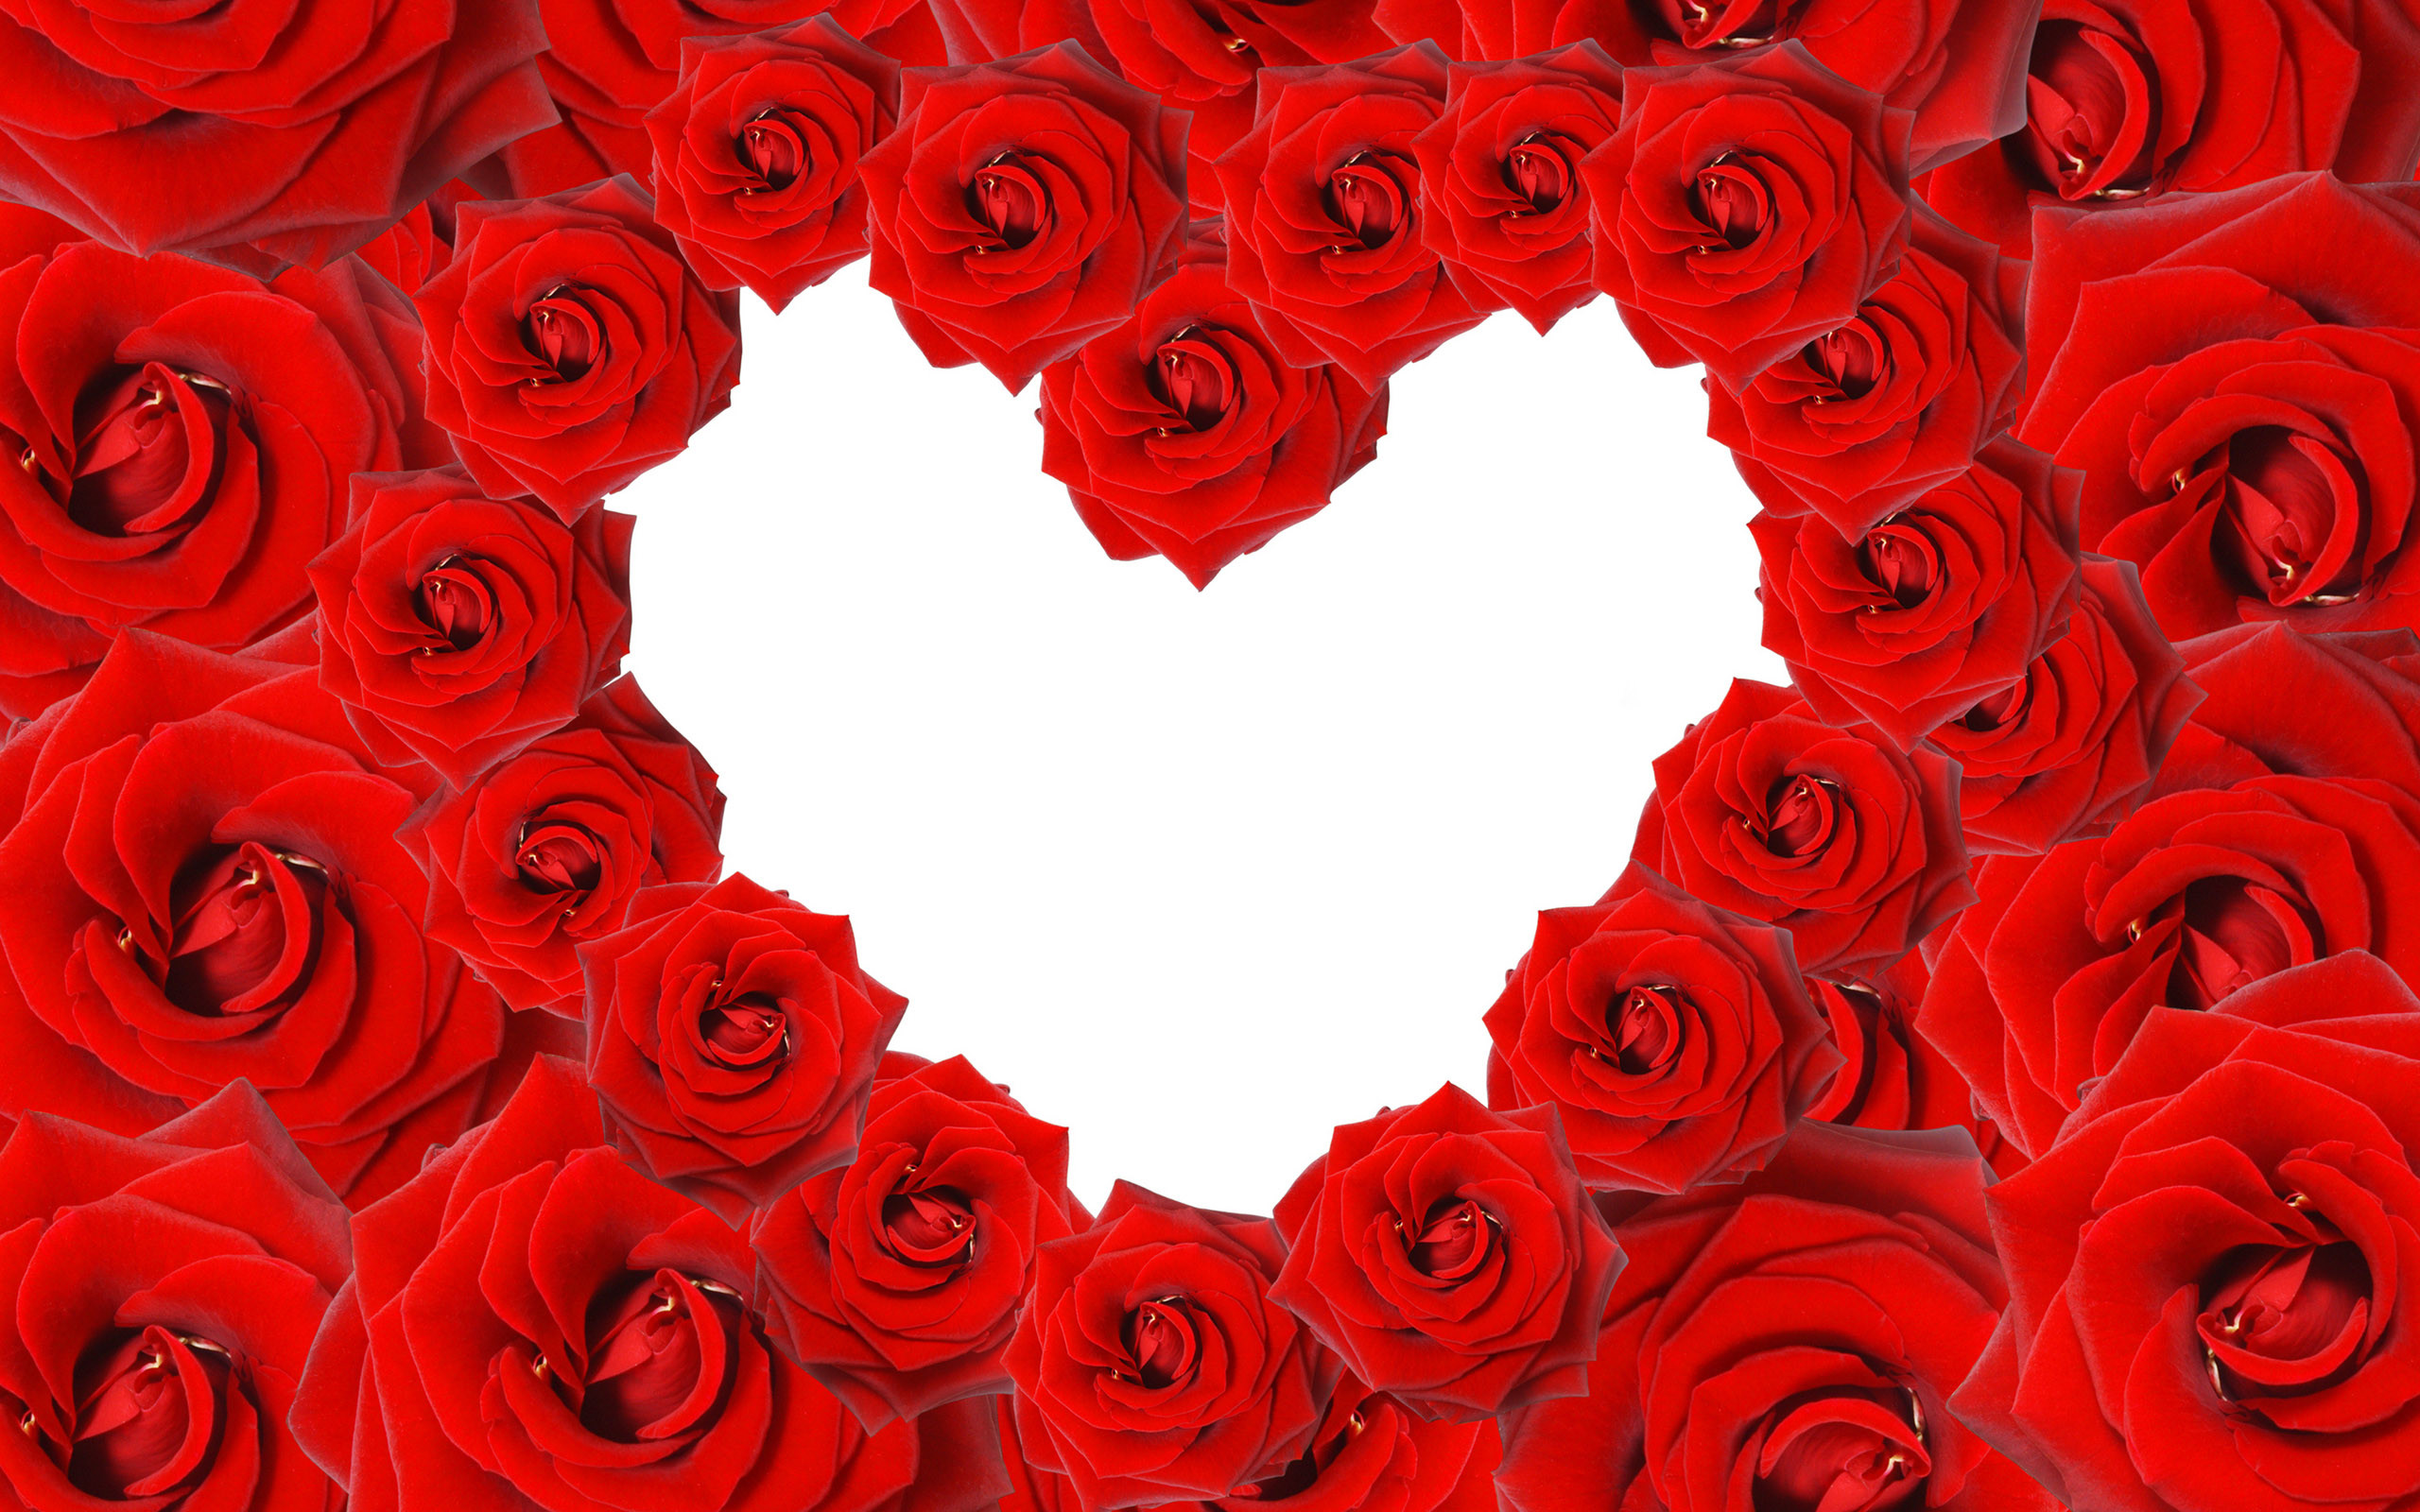 2560x1600 Red Roses & Love Heart